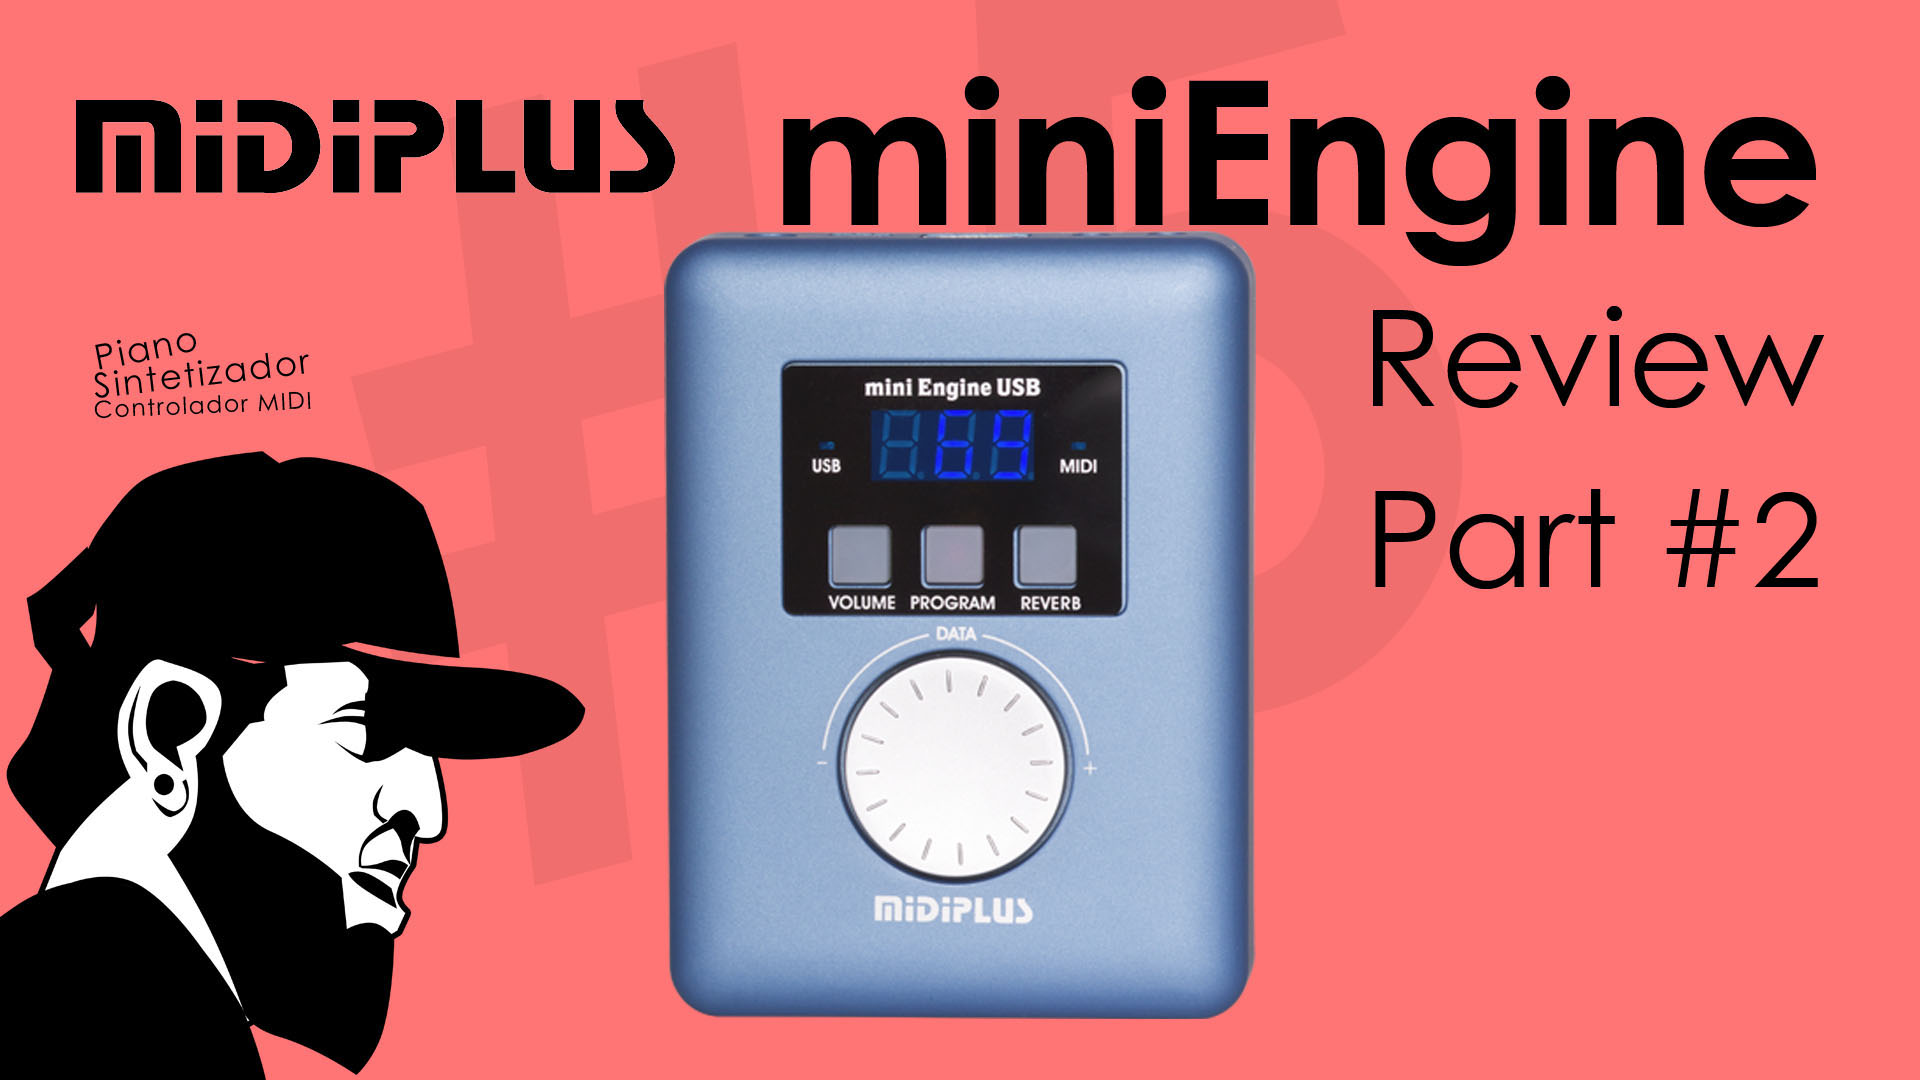 Midiplus Origin 37 - Customer Reviews, Prices, Specs and ...